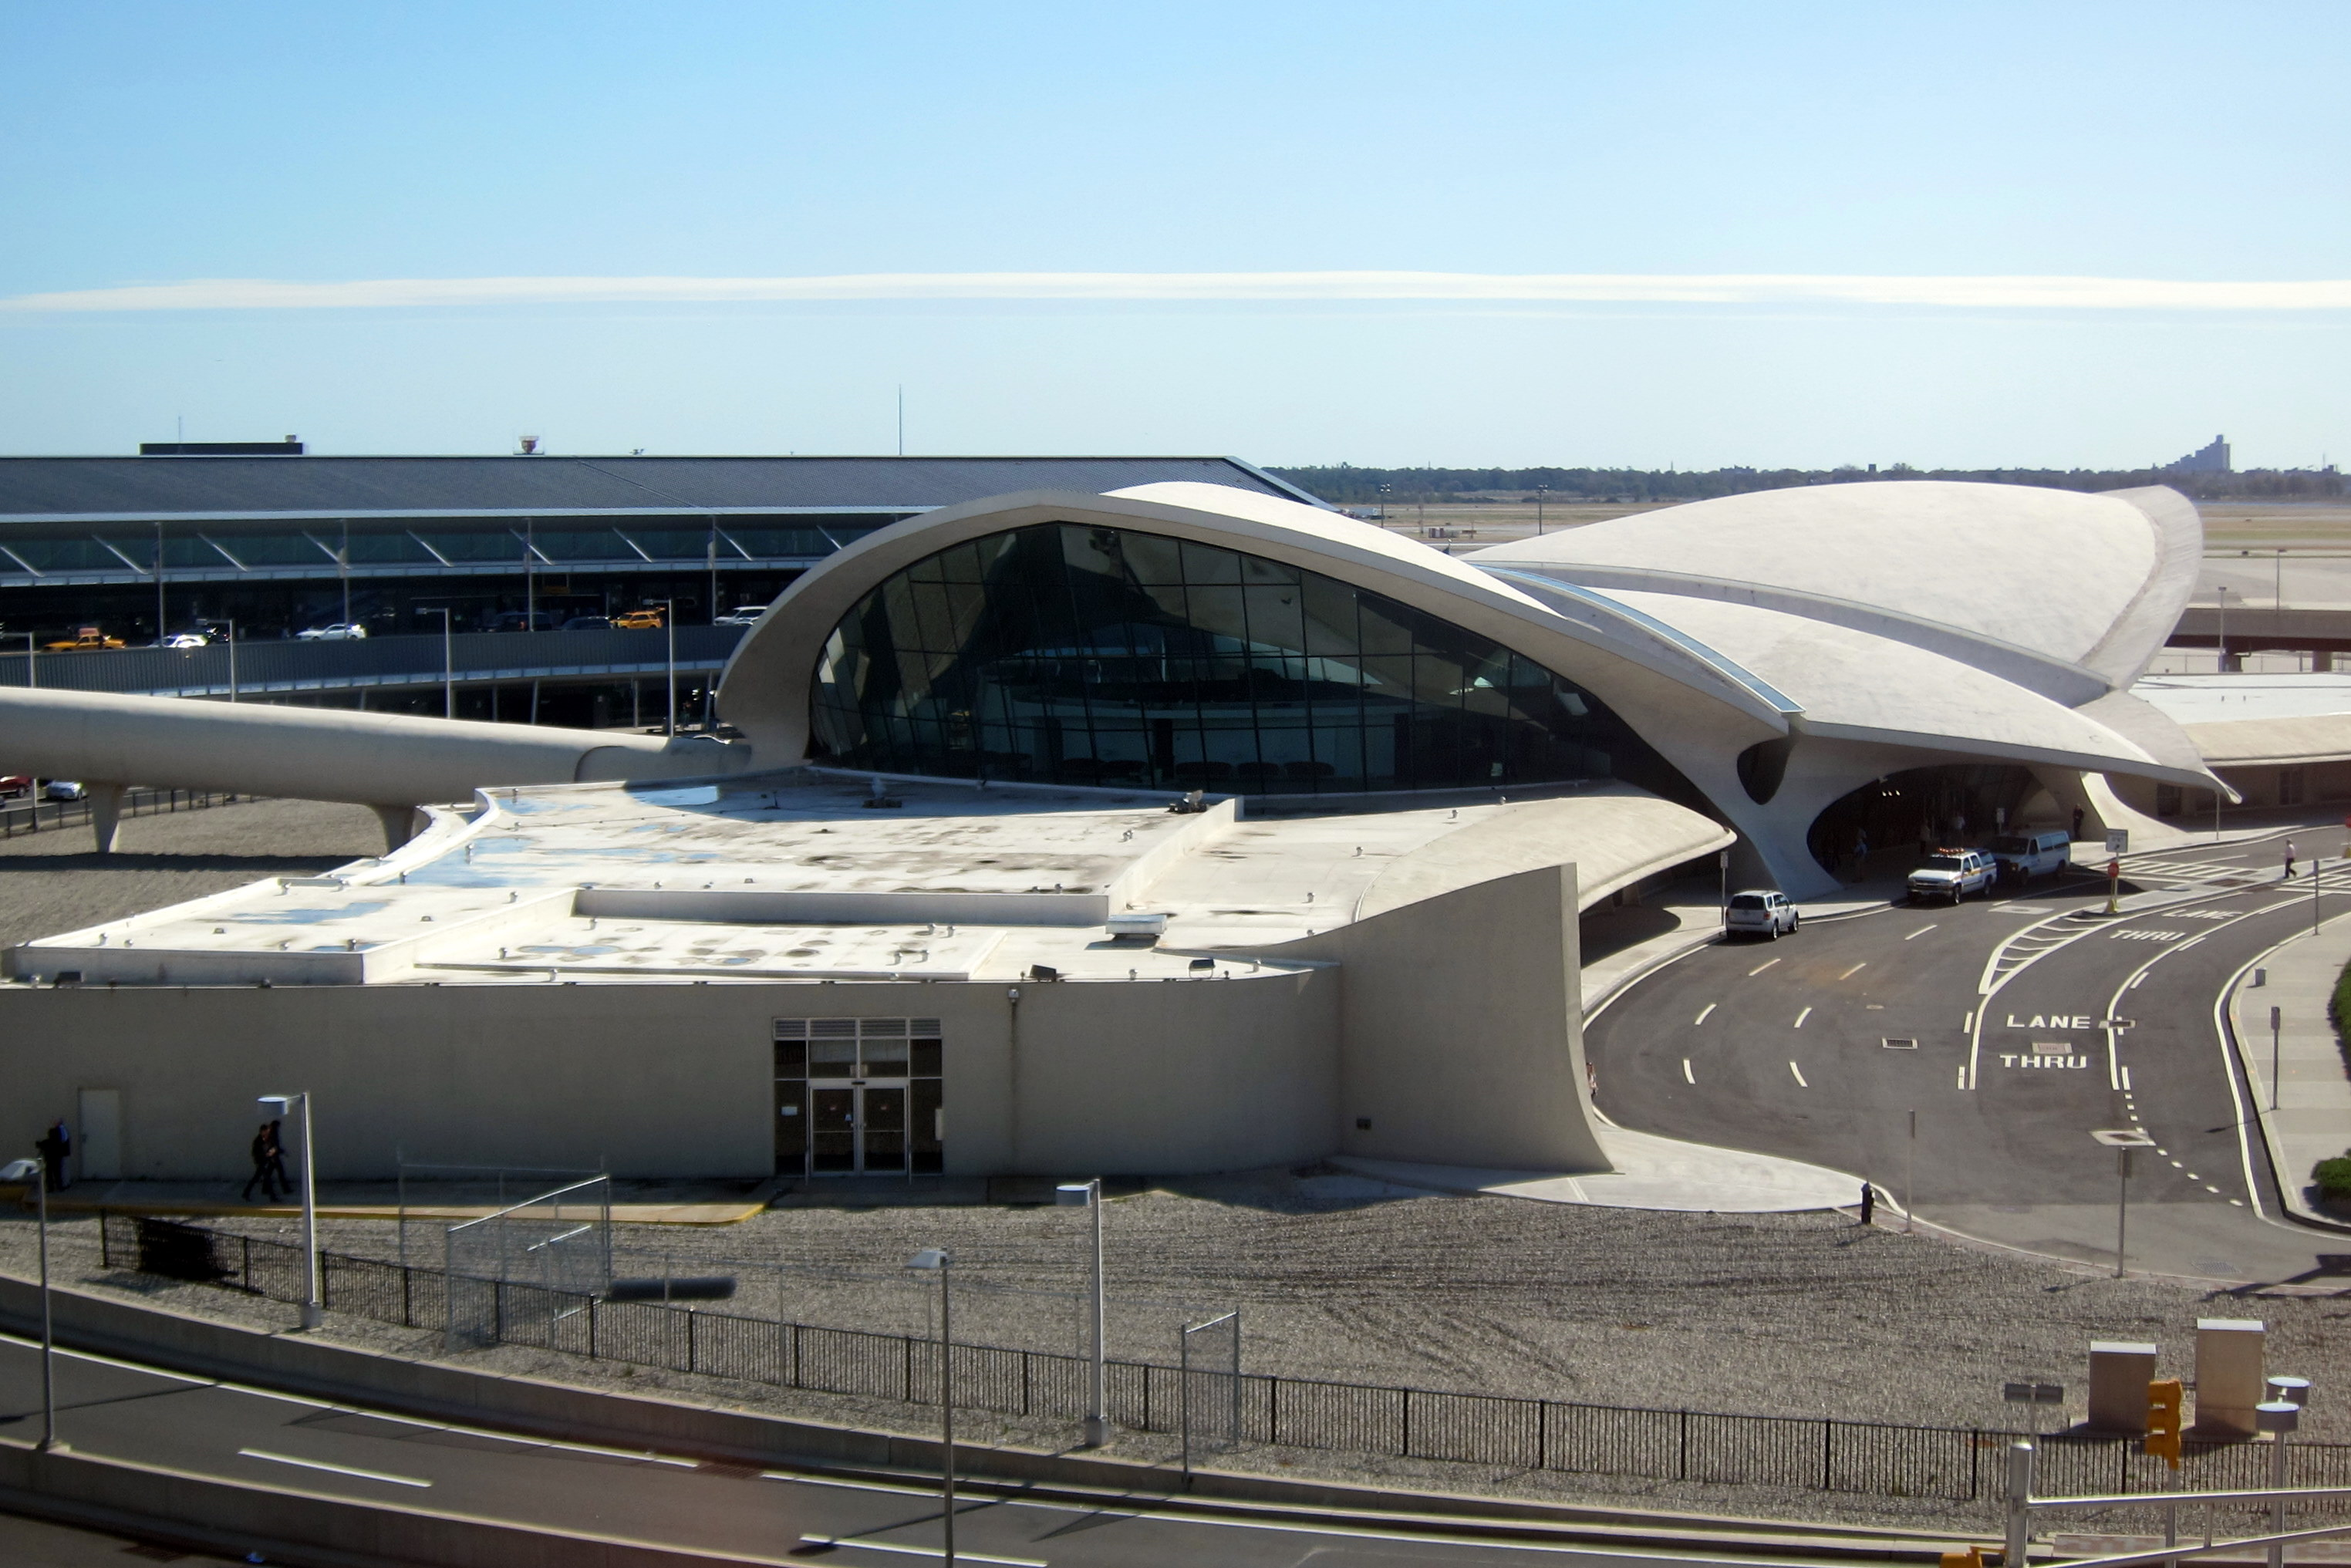 THE 10 CLOSEST Hotels to John F. Kennedy Intl Airport (JFK